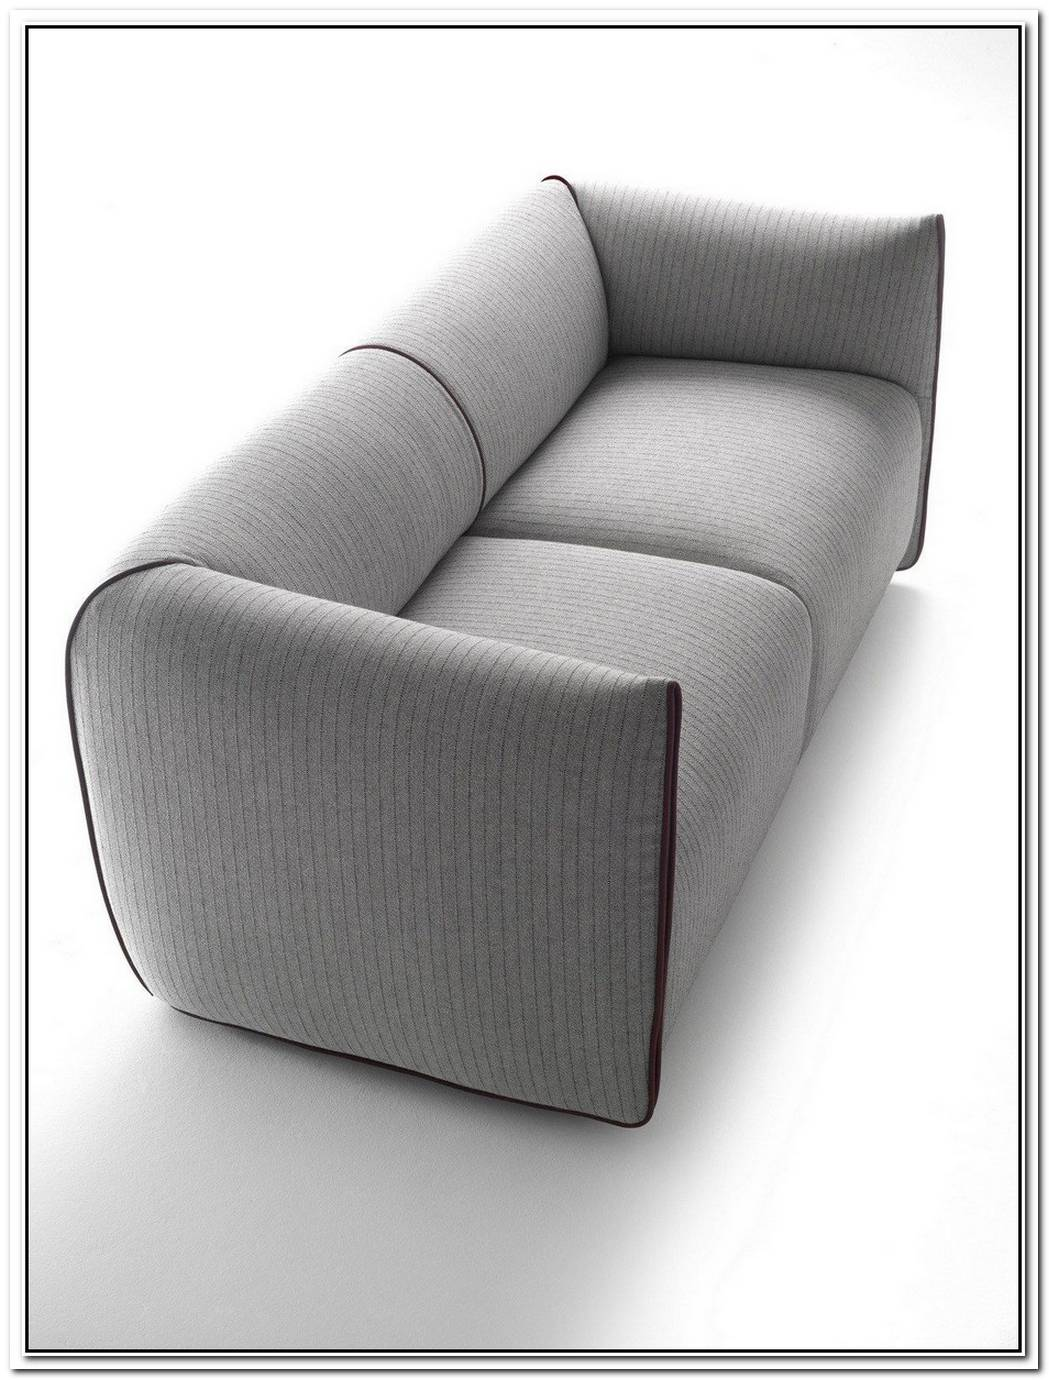 Two Seater Upholstered Sofa With Removable Cover